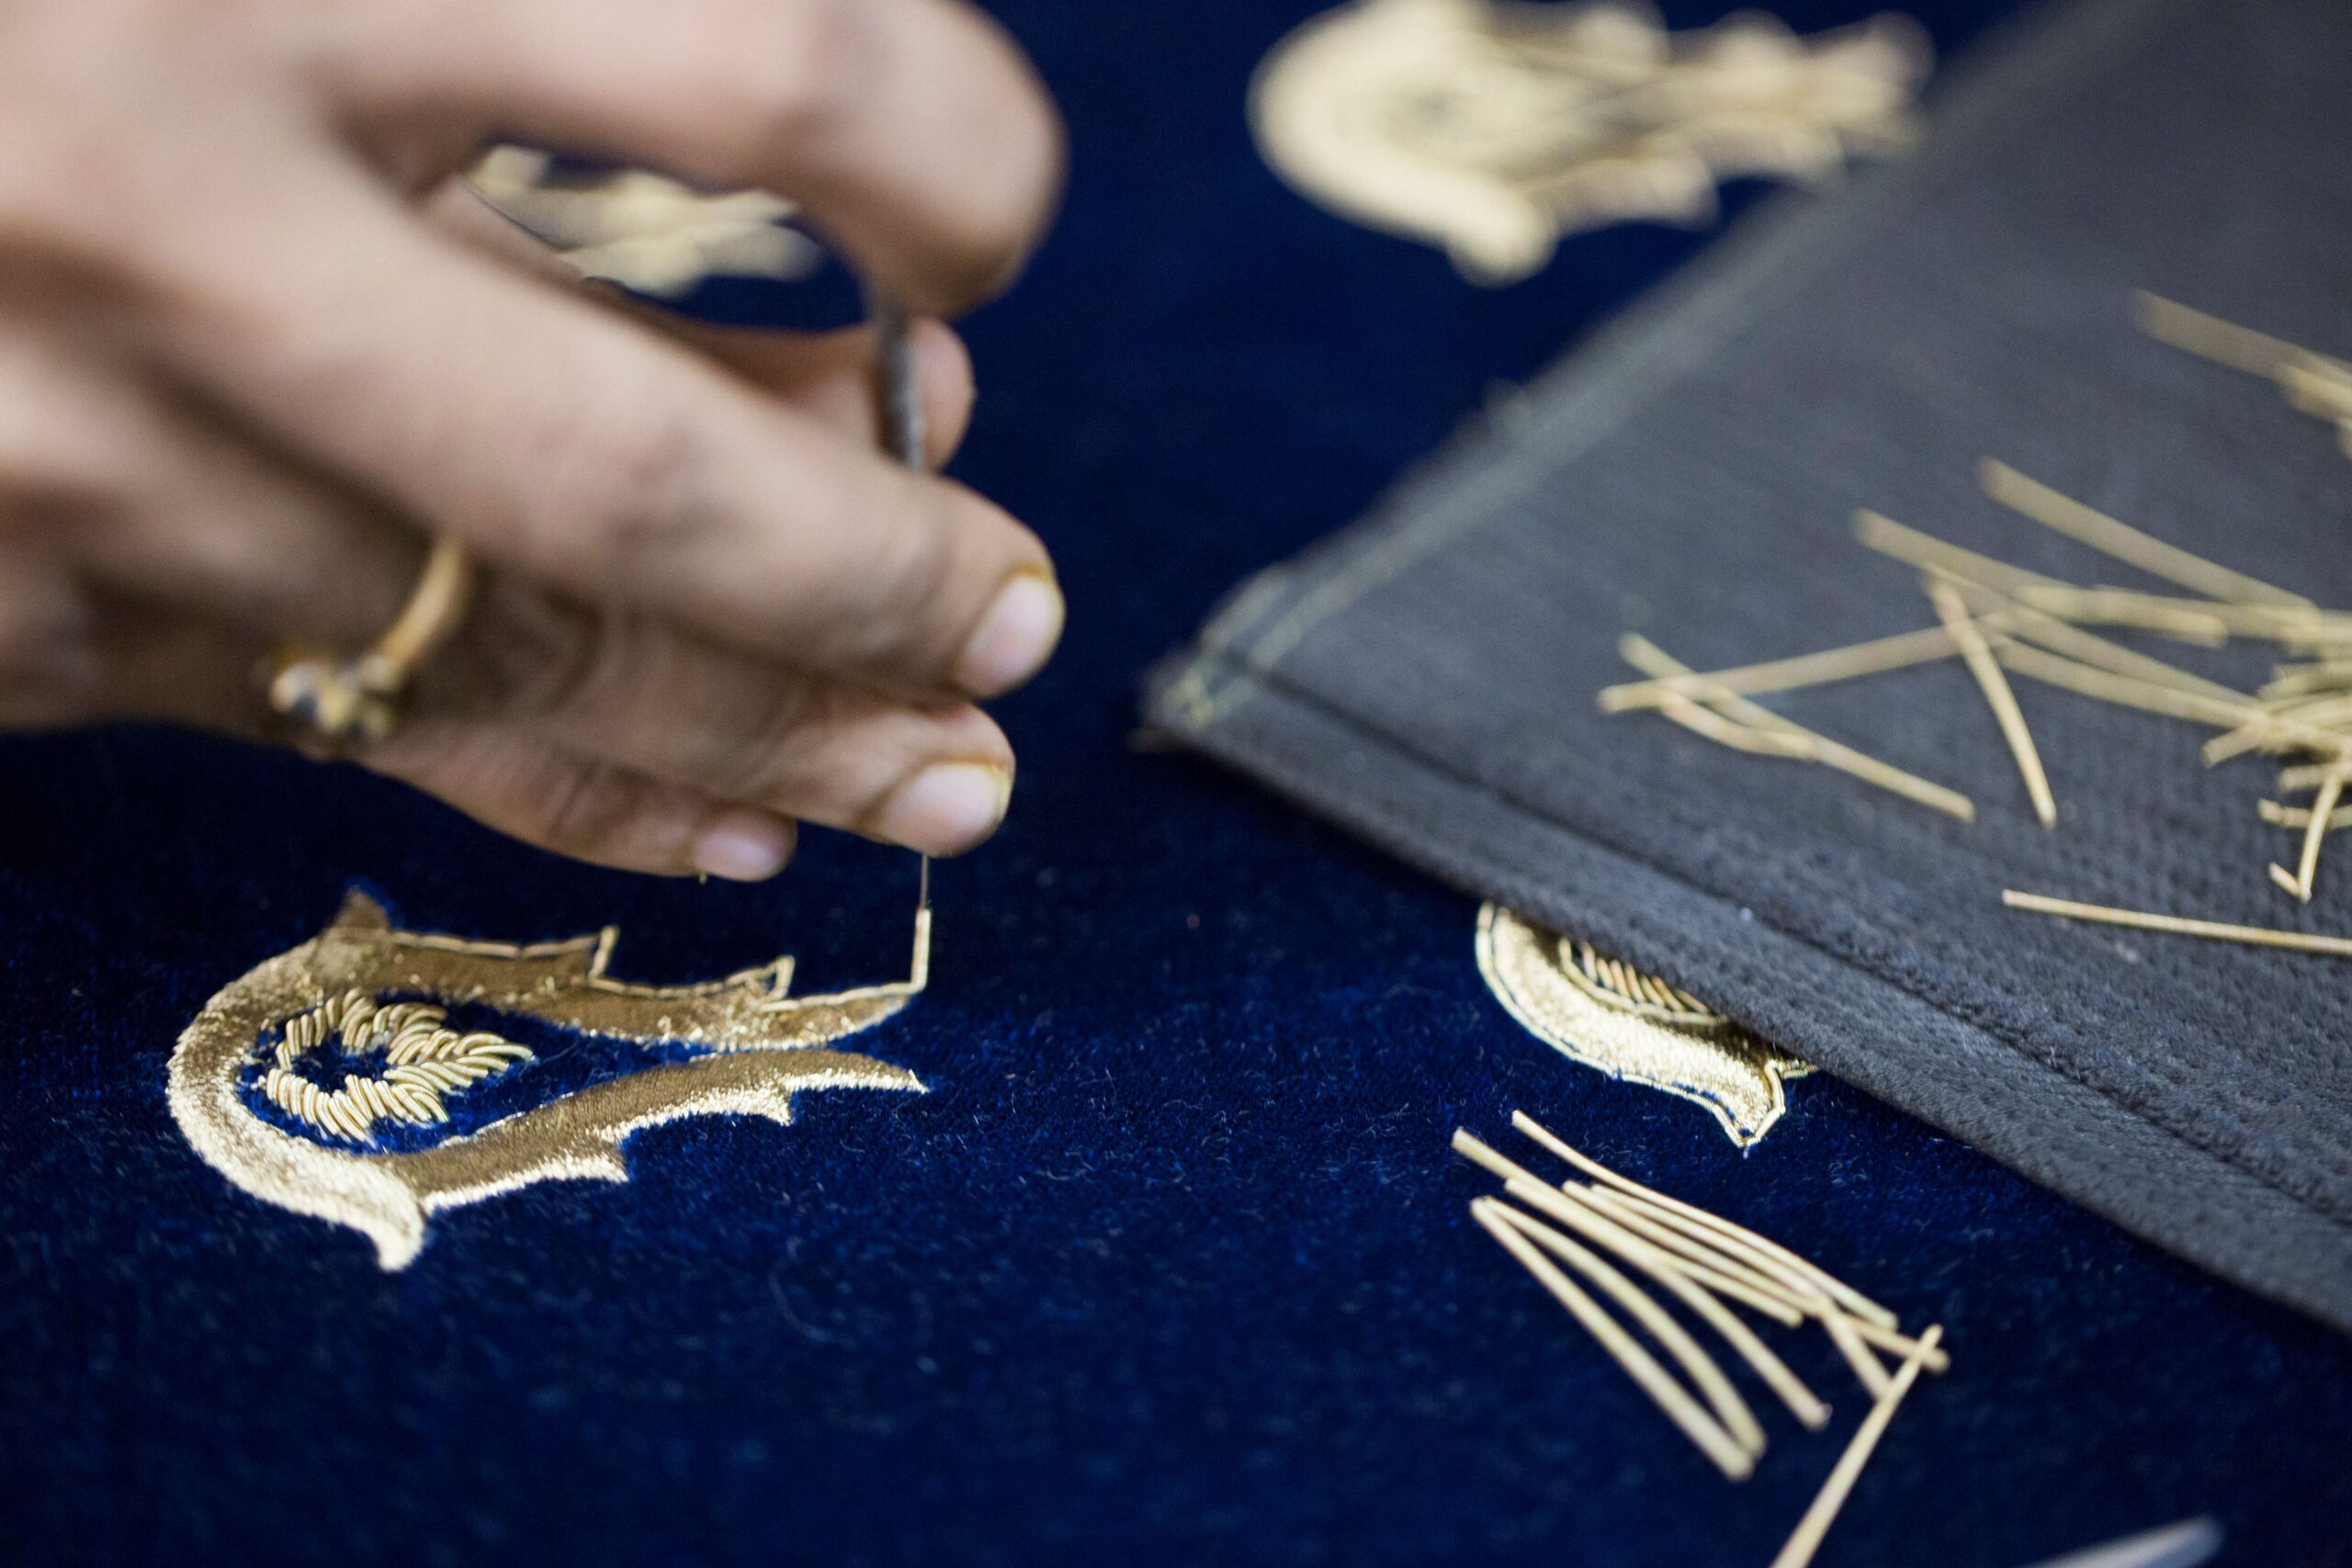 Hand Embroidery close- up